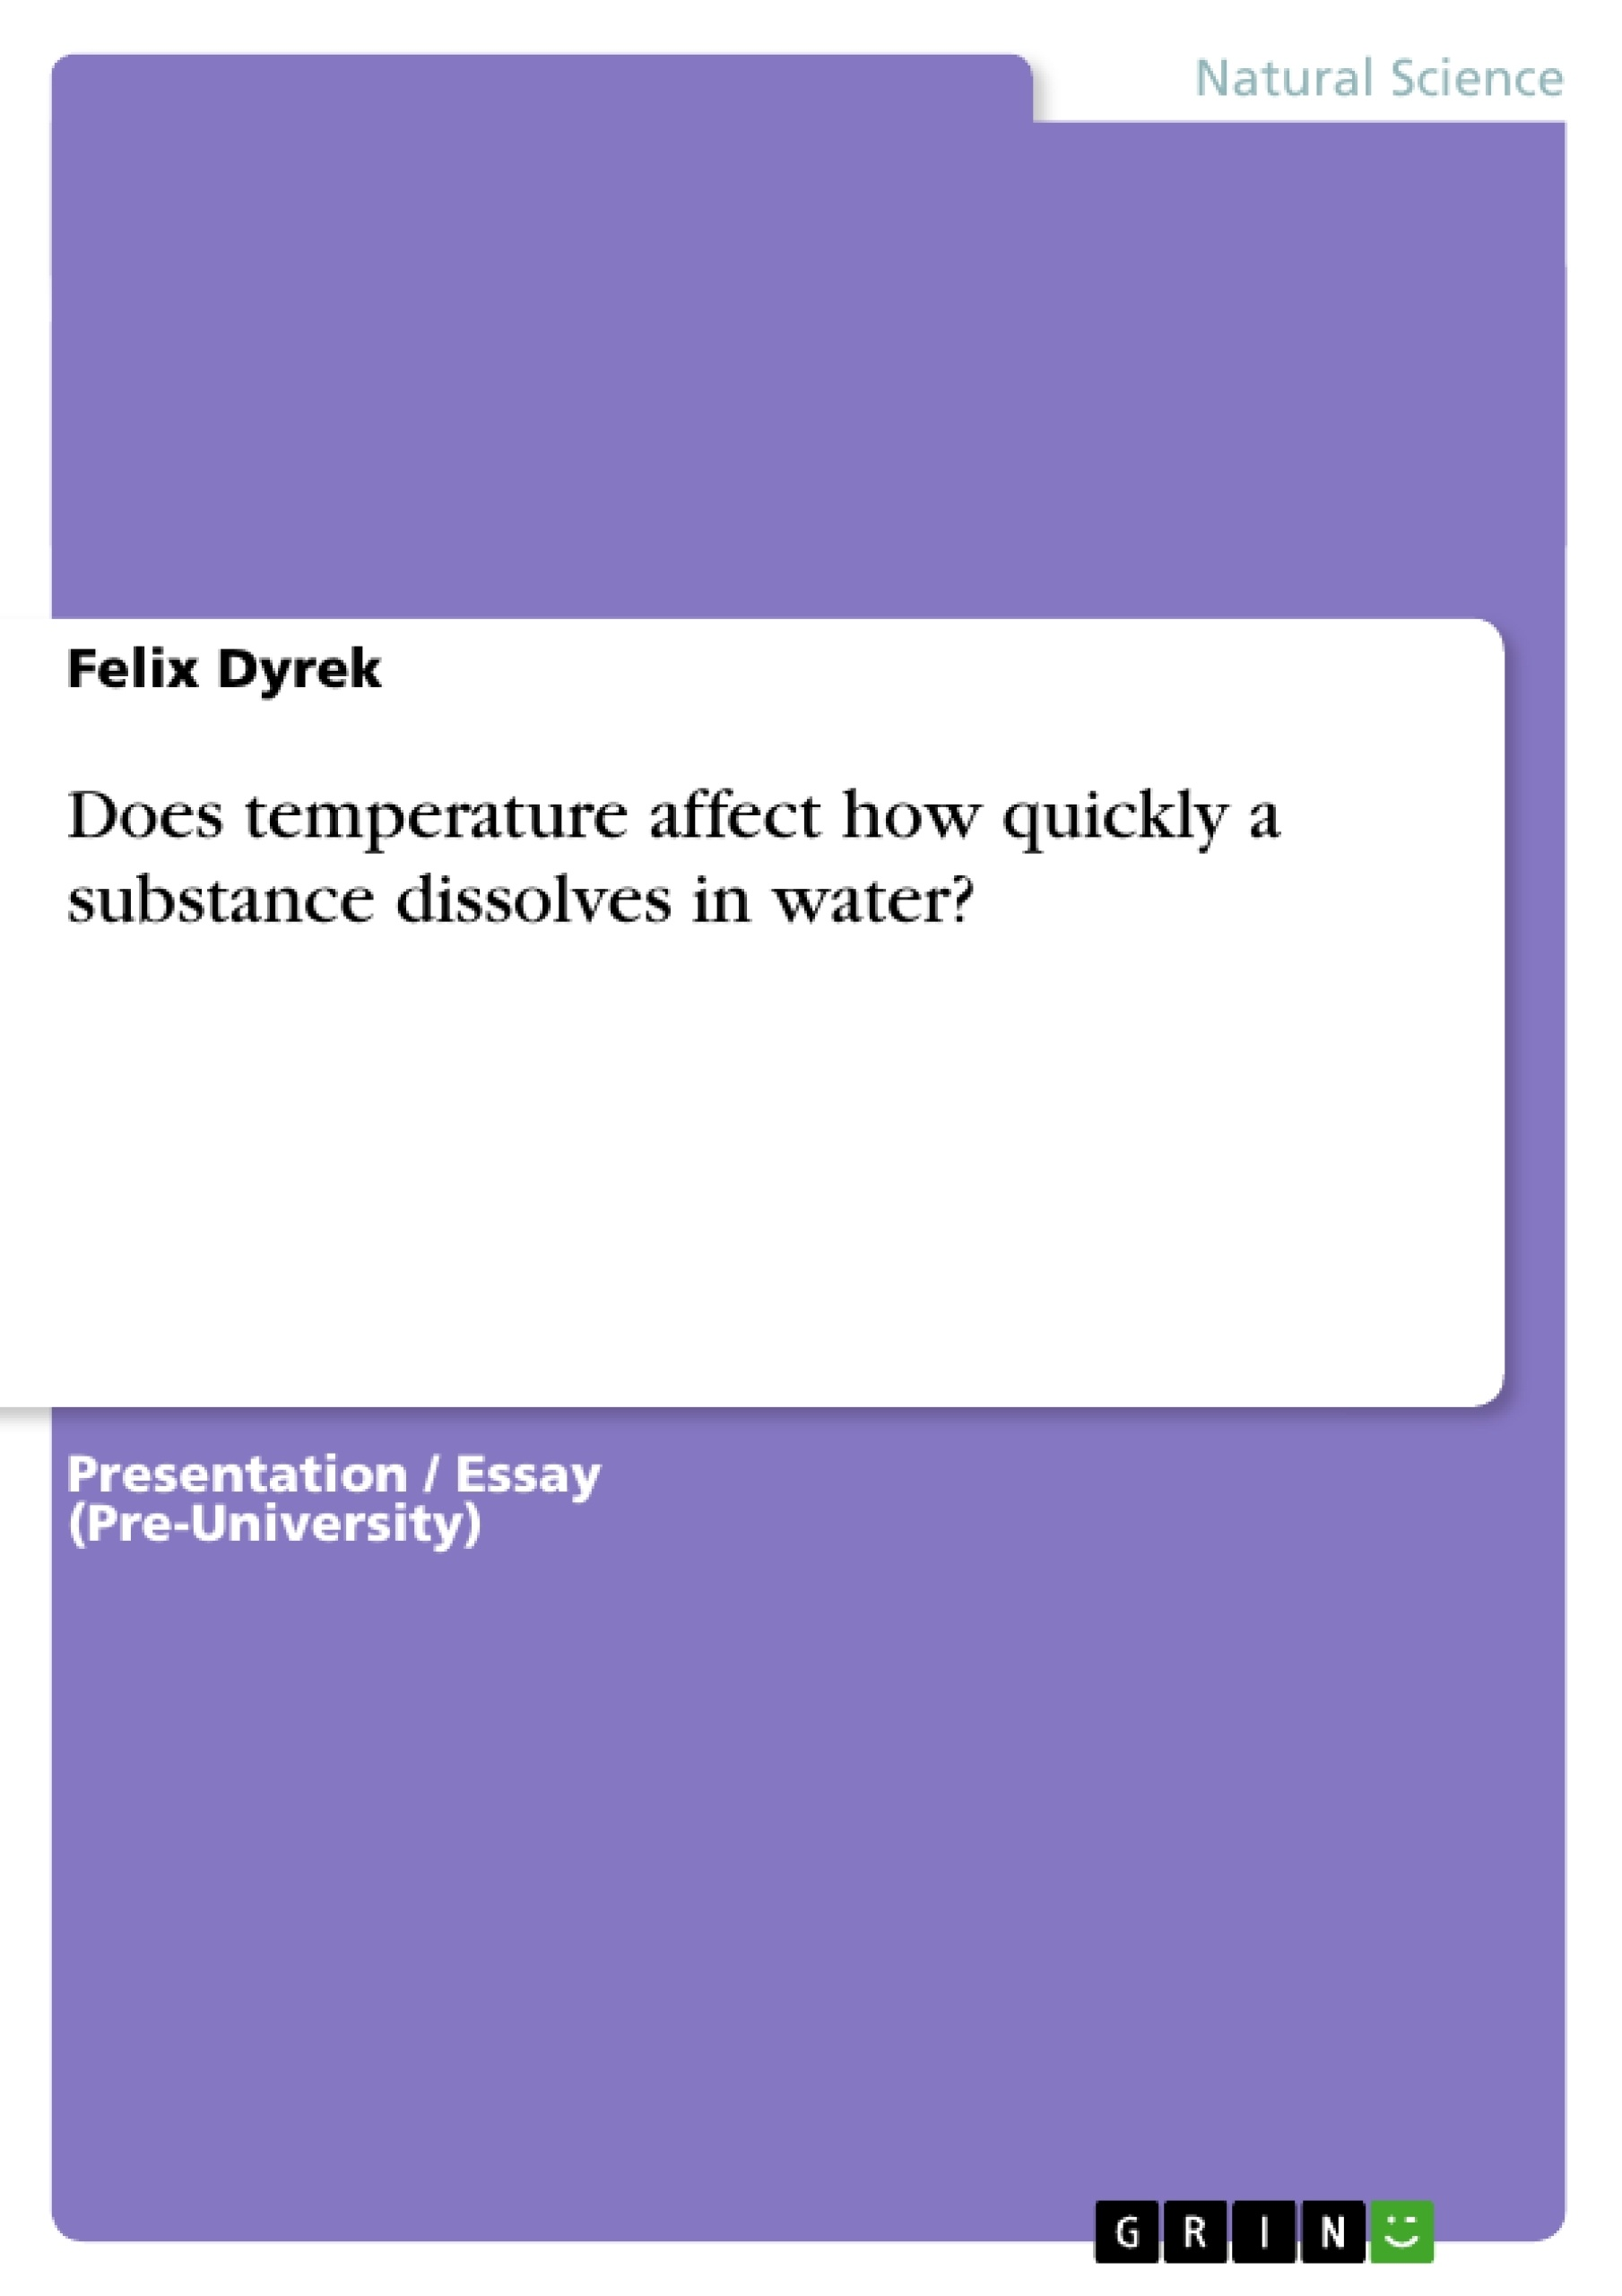 Title: Does temperature affect how quickly a substance dissolves in water?